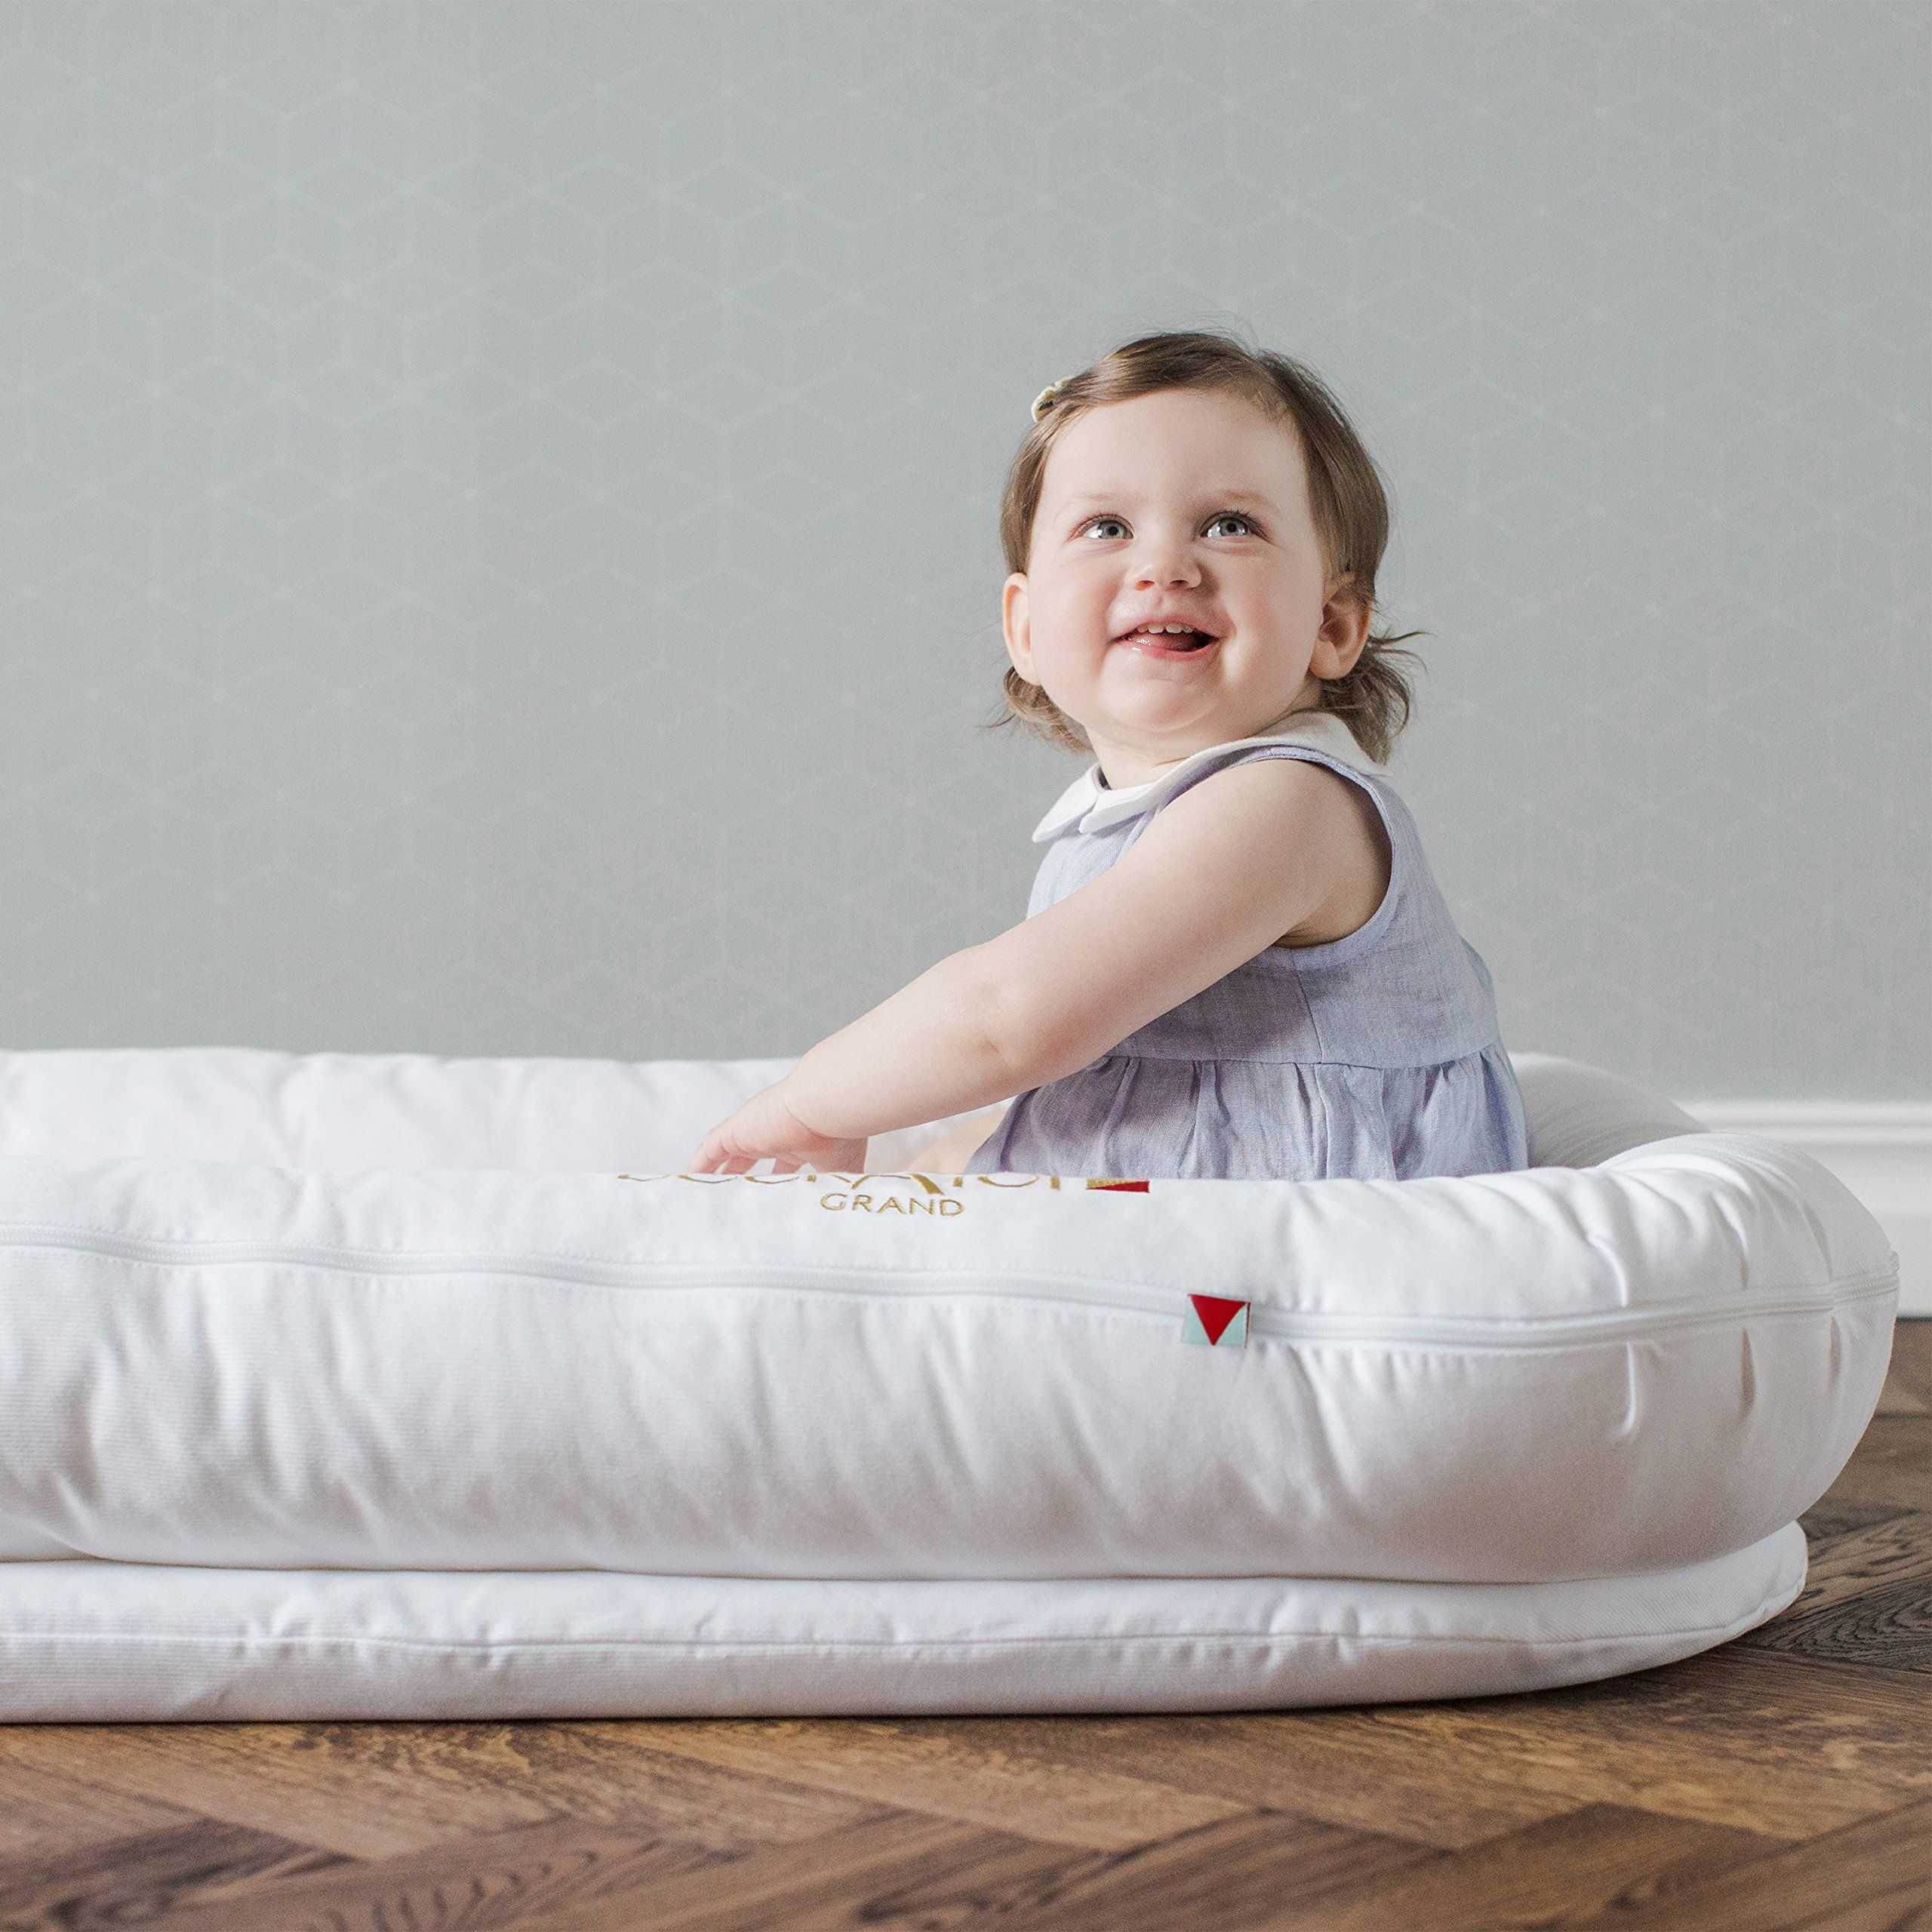 Cover Only Celestial Blue For Dockatot Grand Dock Dock Sold Separately Compatible With All Dockatot Grand Docks See Dockatot Grand Dockatot Nursery Bedding